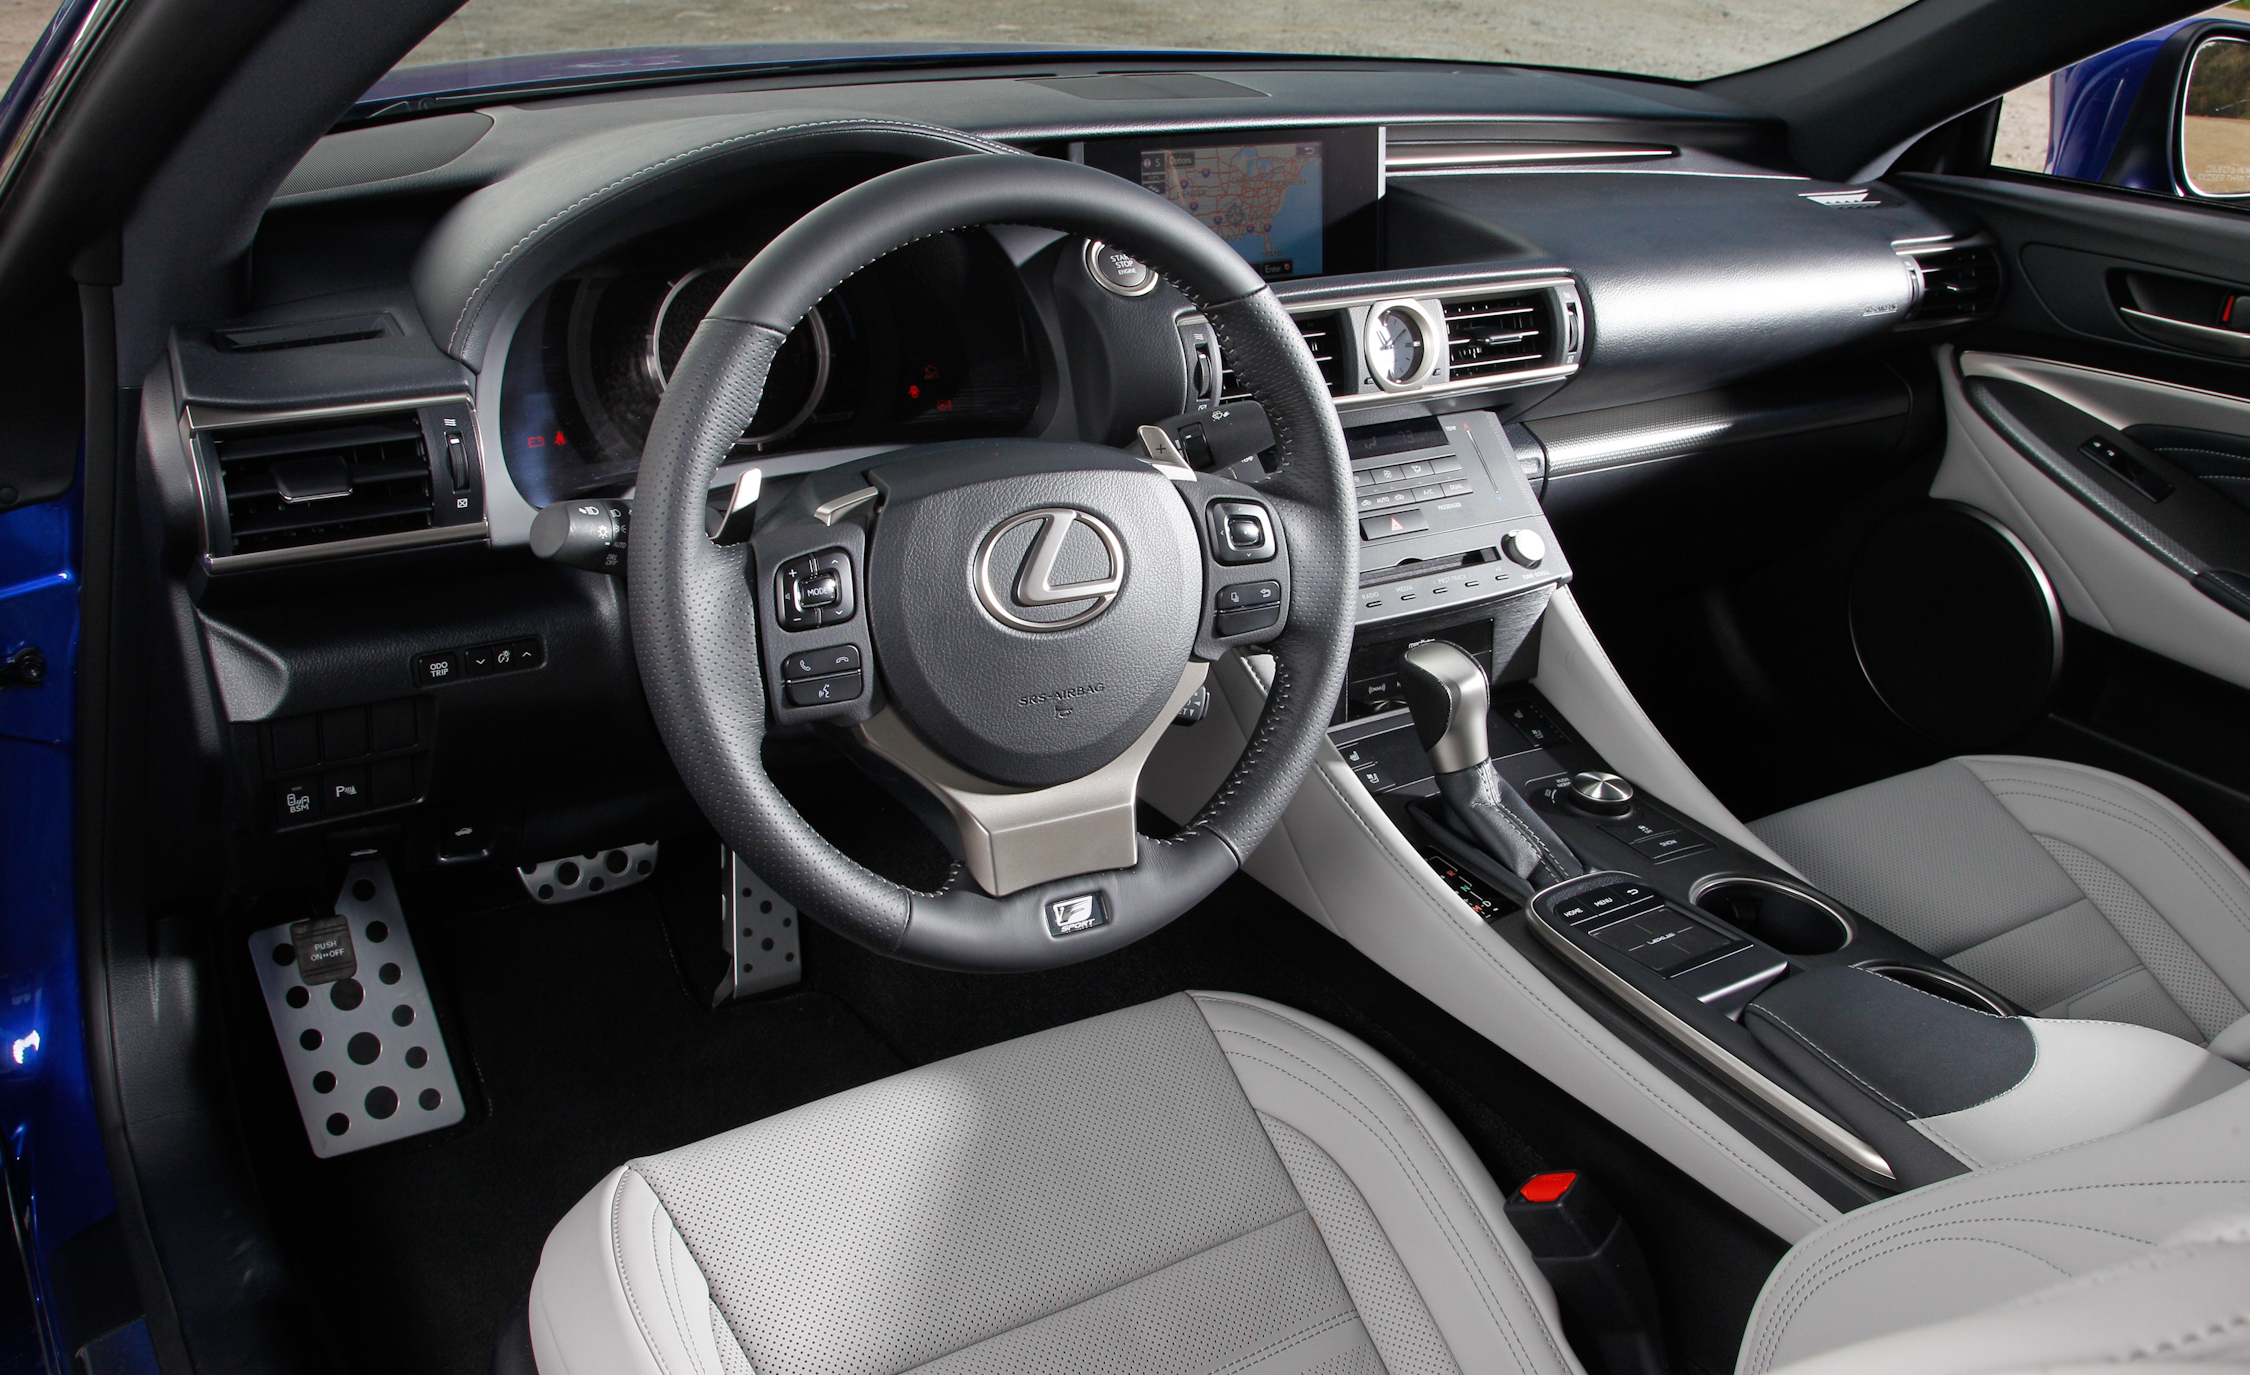 2015 Lexus RC350 F Sport Cockpit Interior